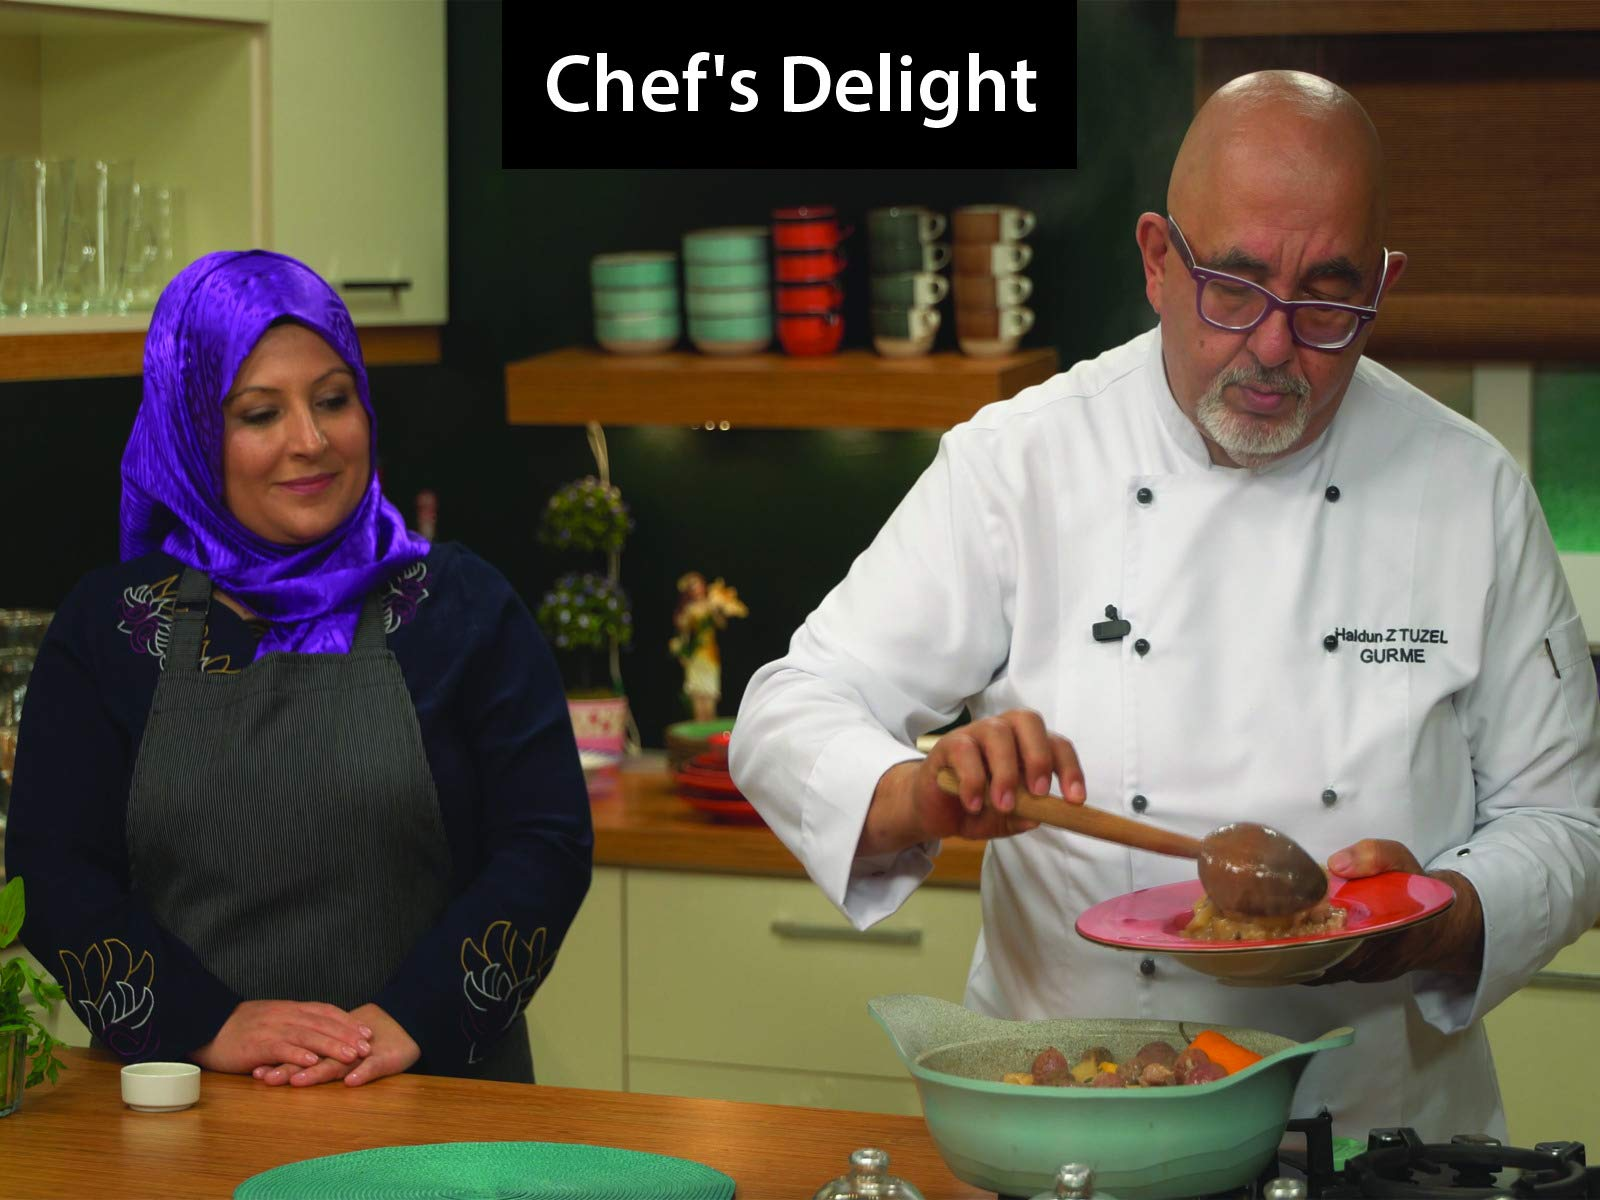 Chef's Delight - Season 2